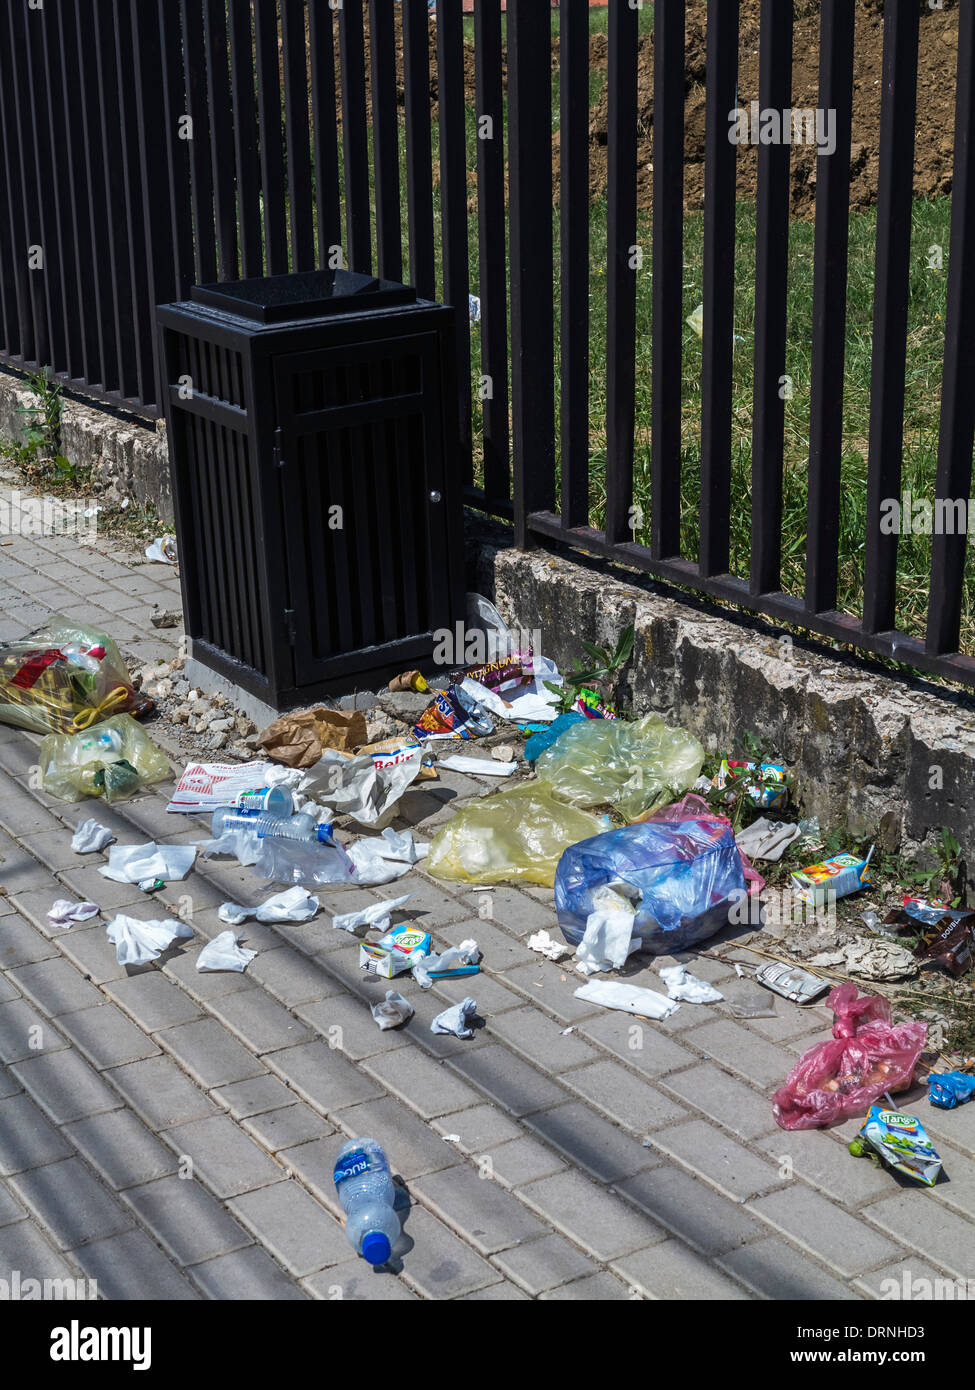 Rubbish on the street next to an empty trash can - Stock Image